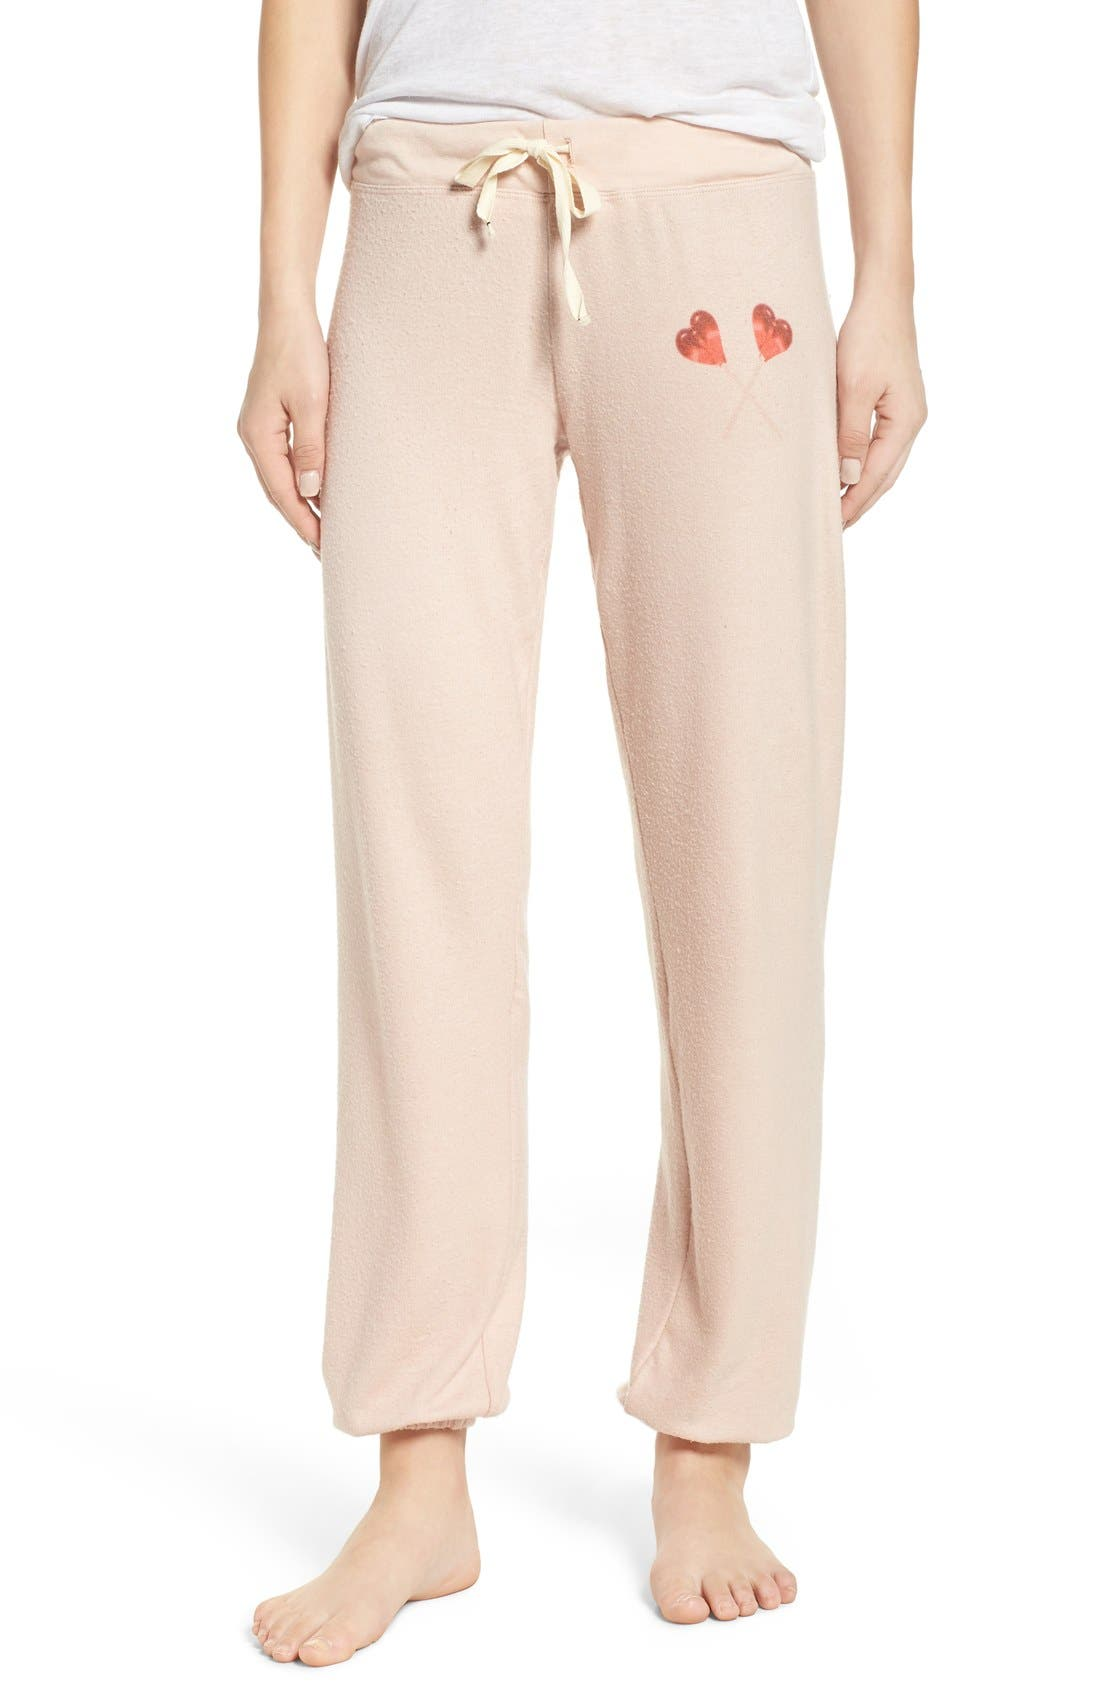 Alternate Image 1 Selected - All Things Fabulous Lollipop Sweatpants